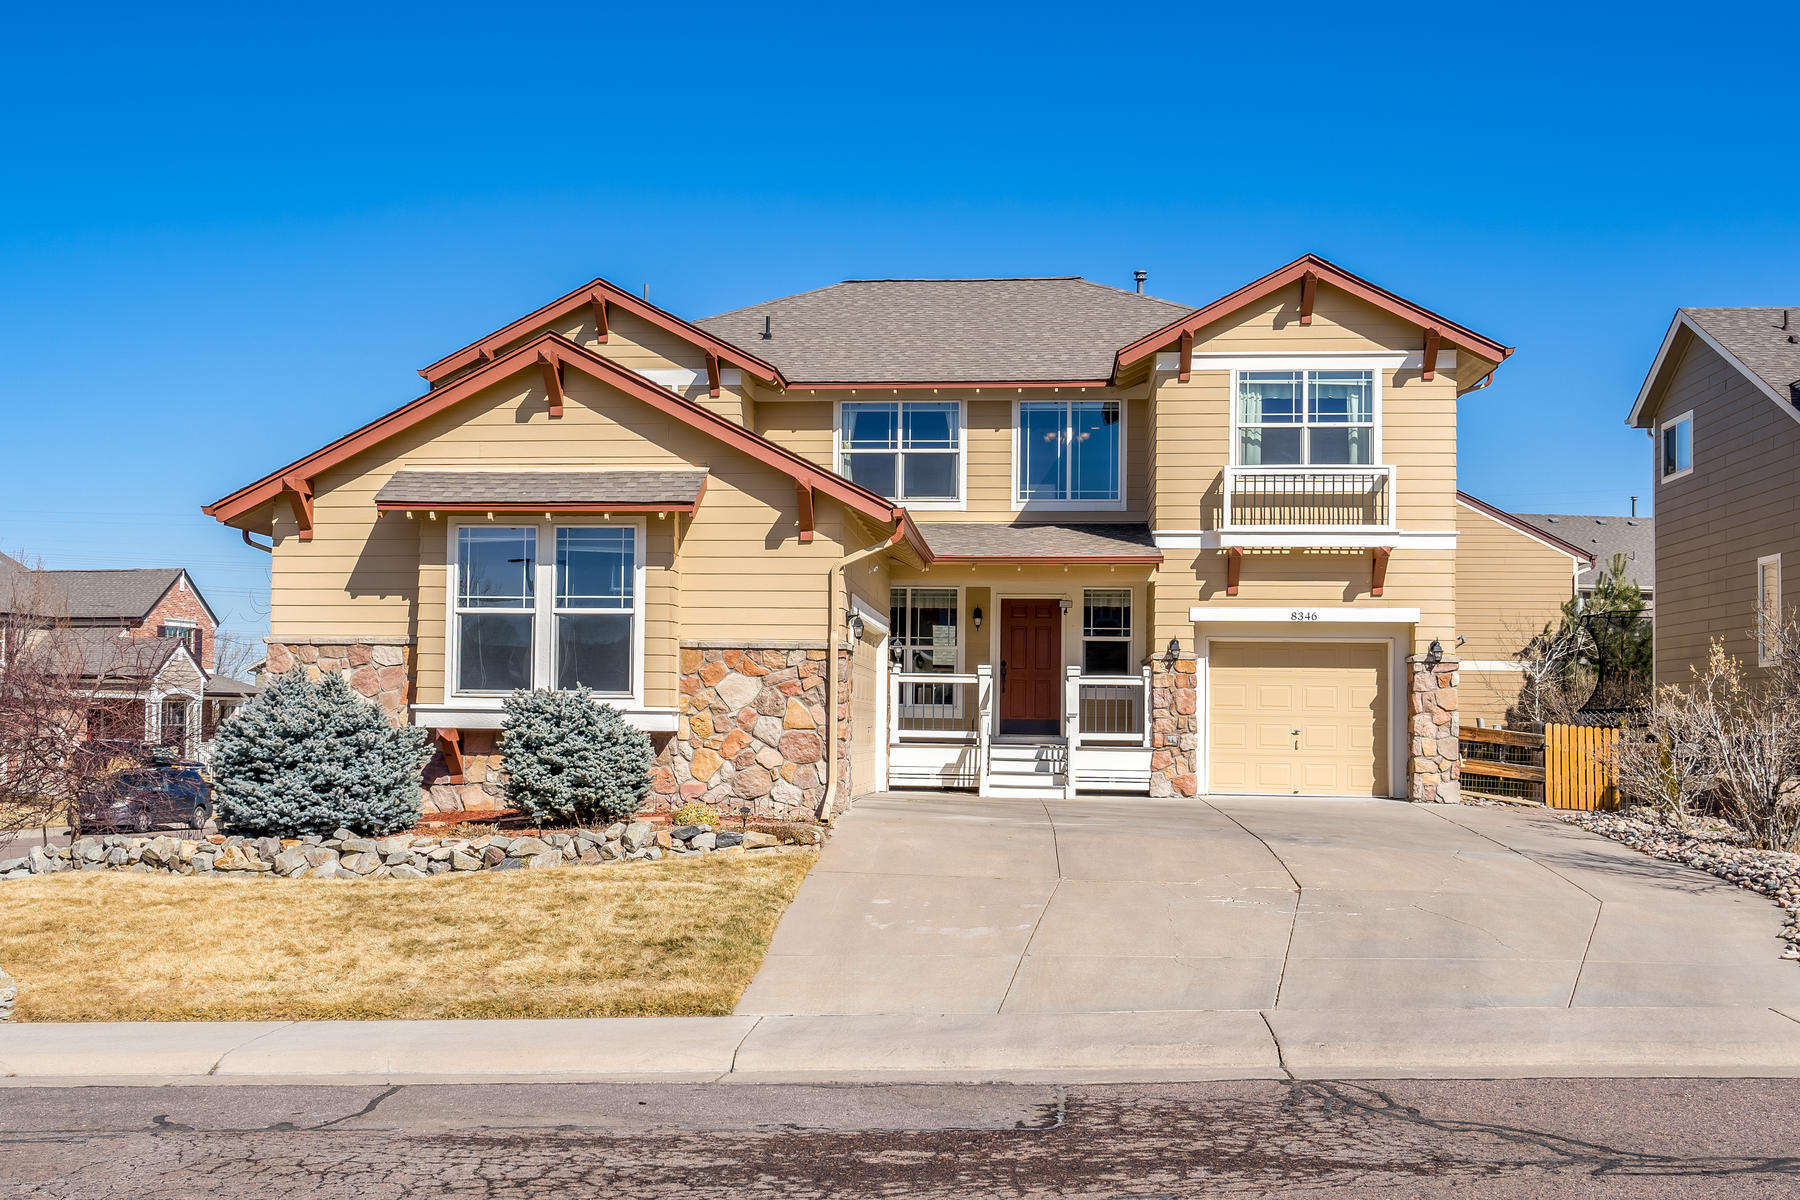 Single Family Home for Active at Castle Pines at it's best! 8346 Briar Haven Ct Castle Pines, Colorado 80108 United States